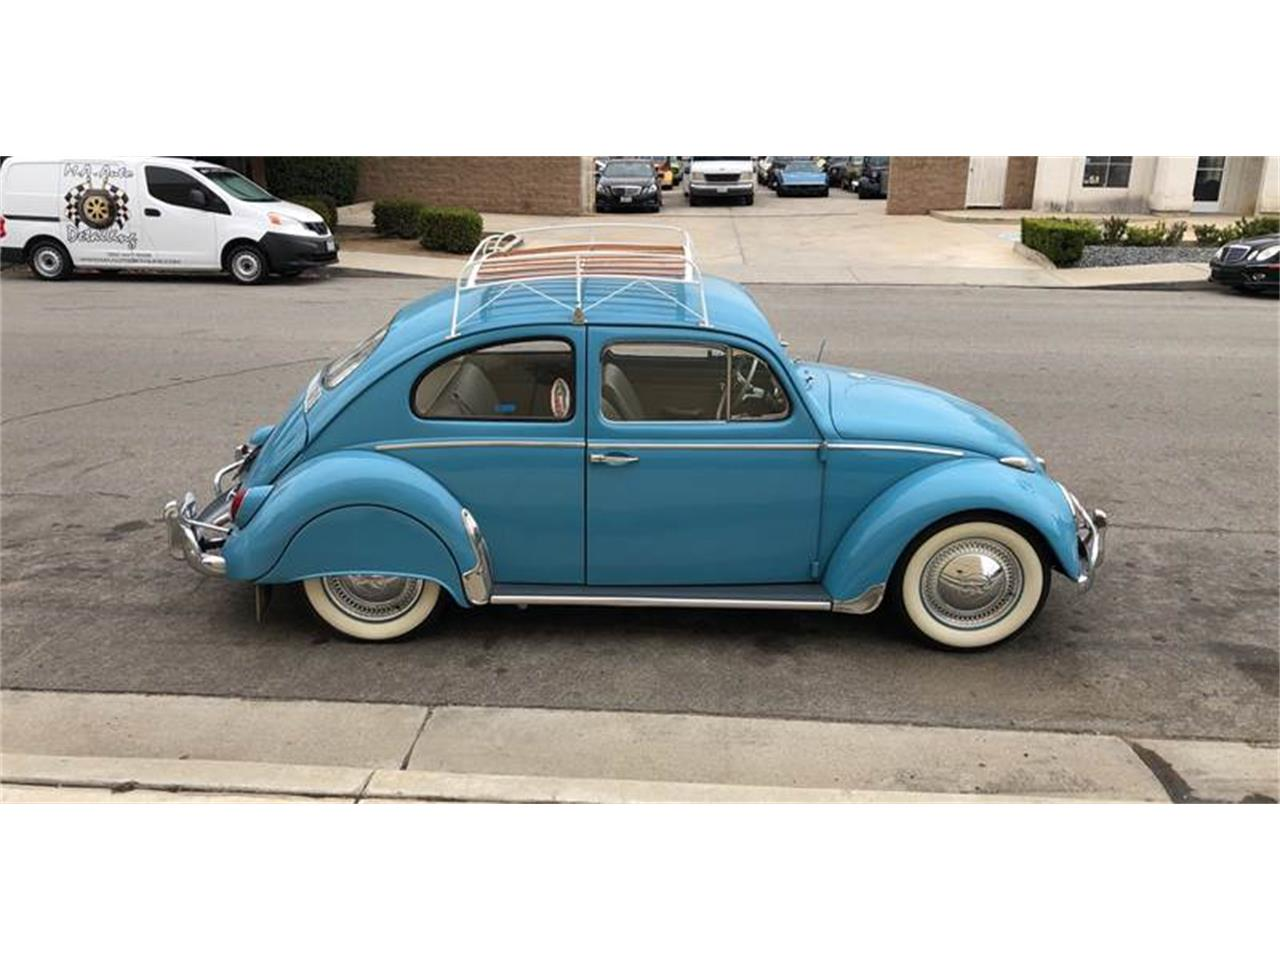 Large Picture of Classic '63 Beetle located in Brea California Auction Vehicle Offered by Highline Motorsports - QEU8